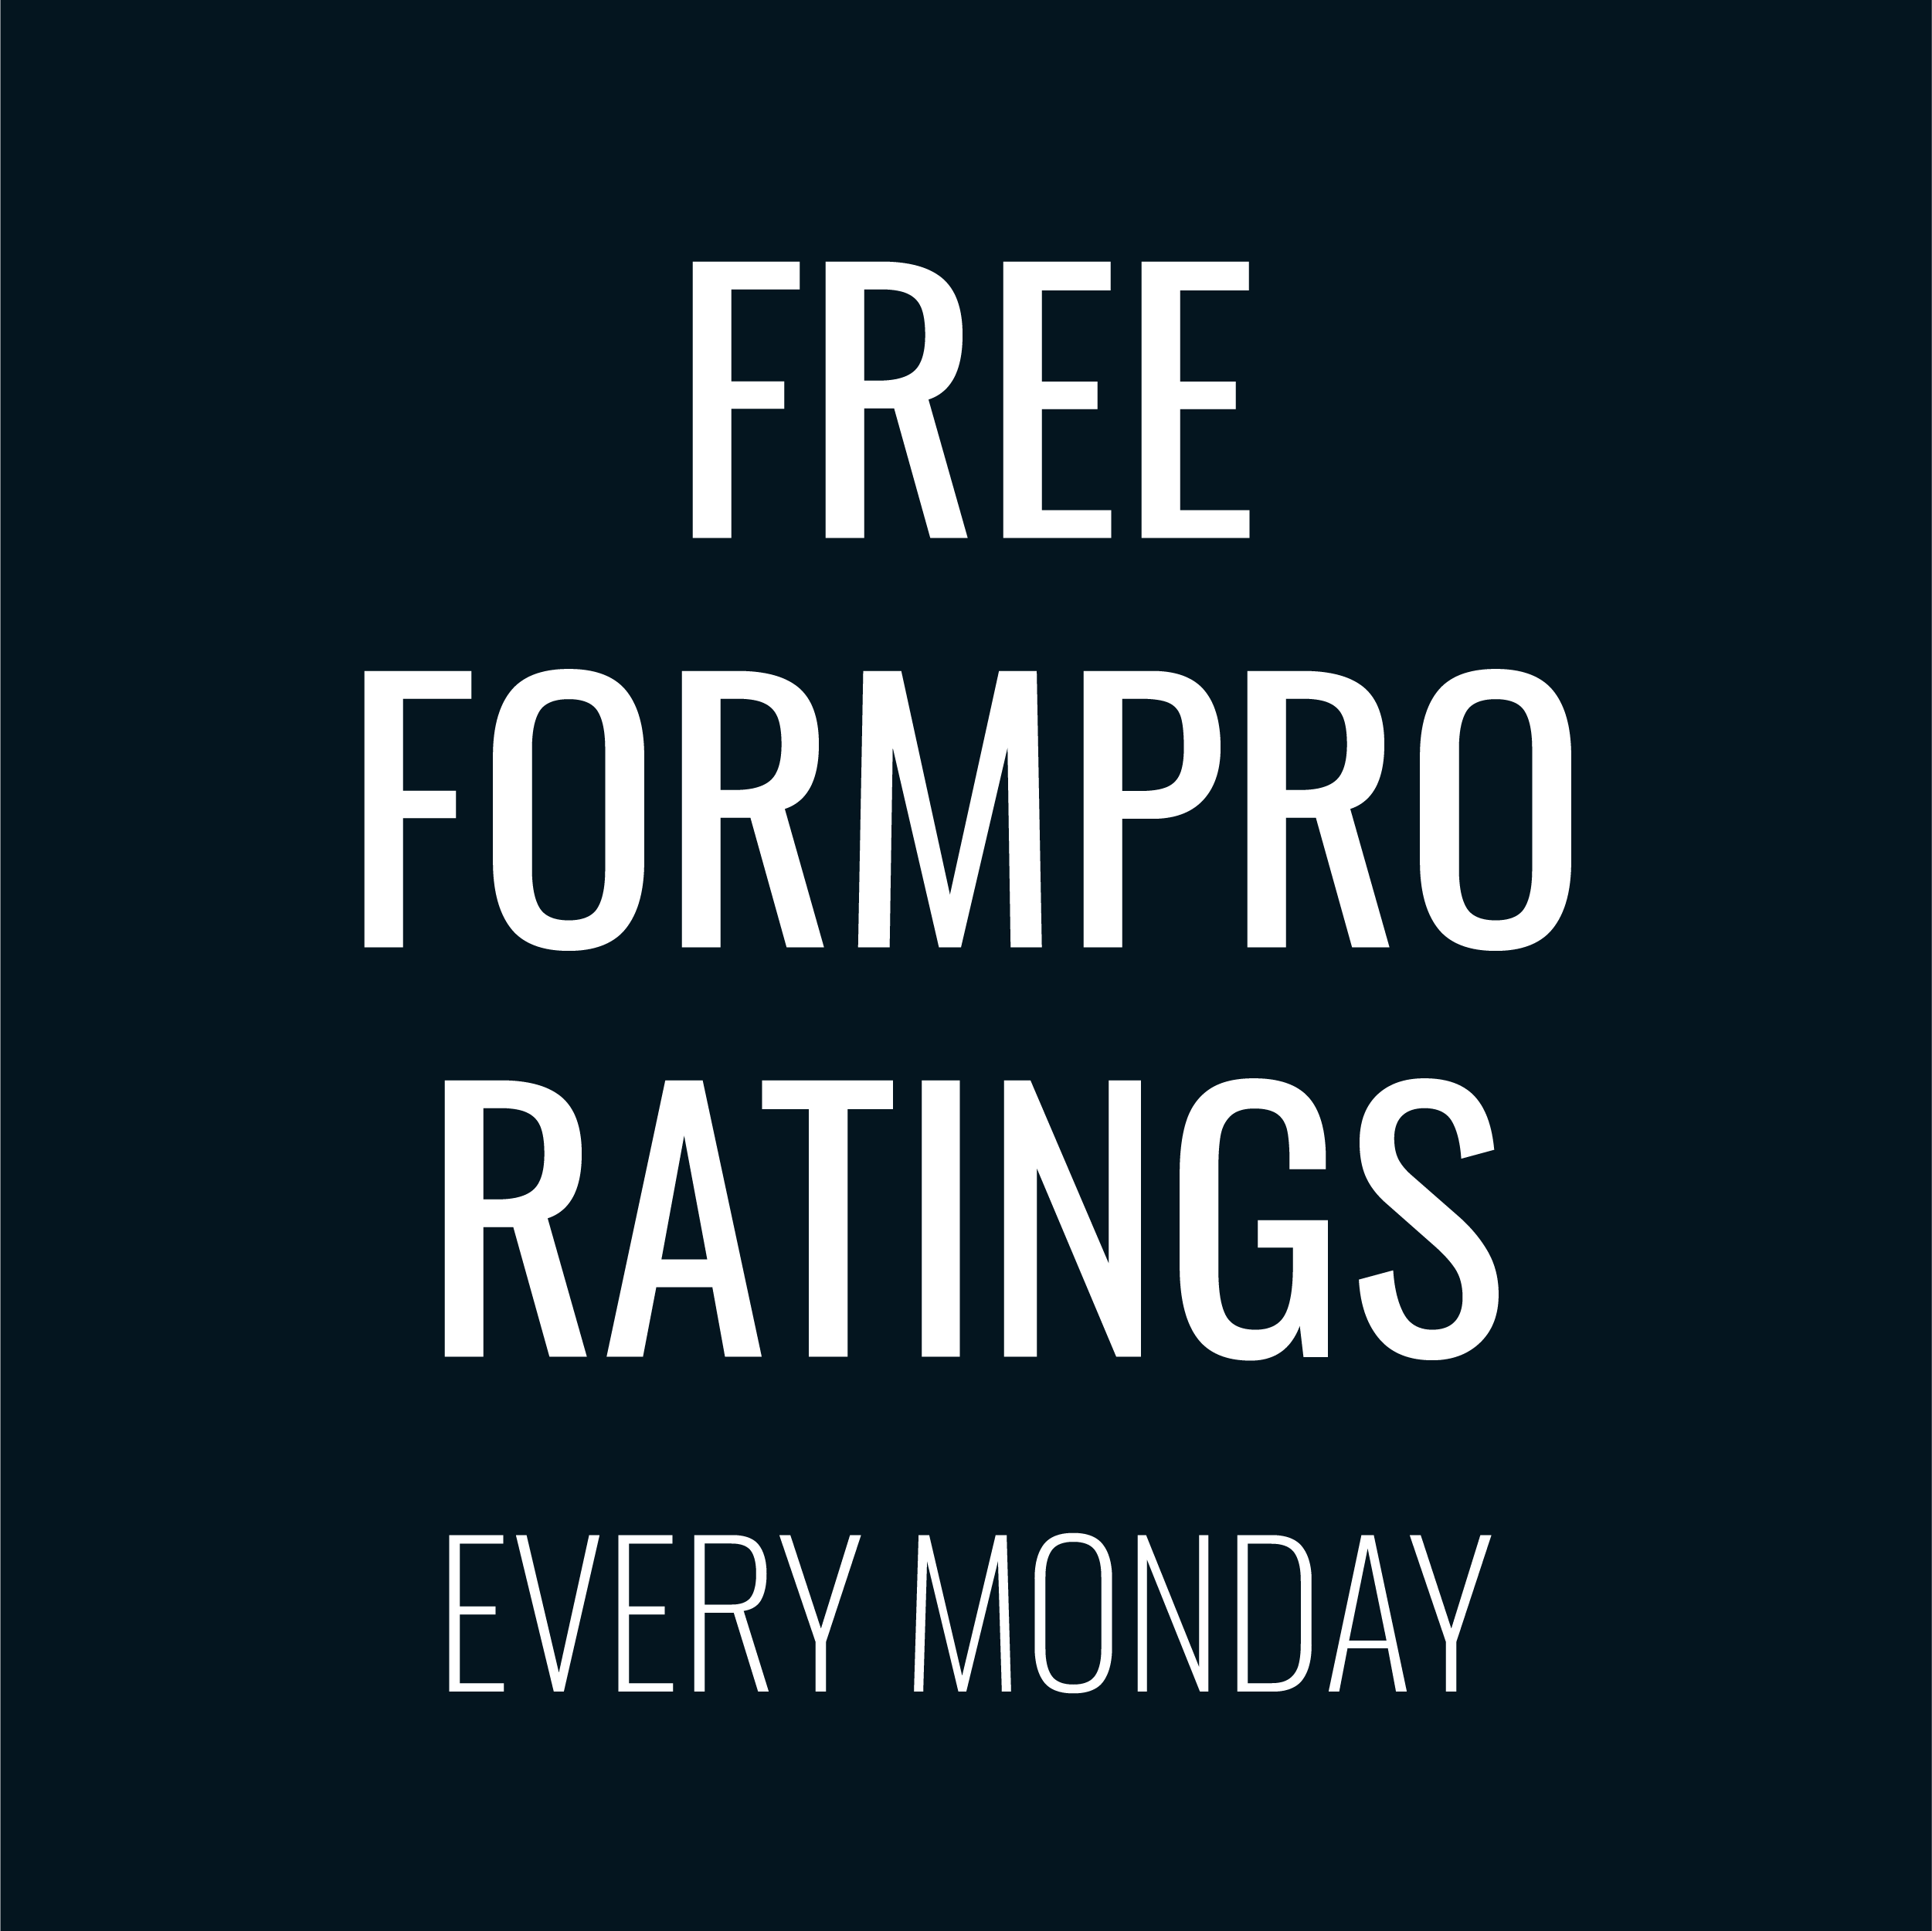 Free Greyhound Ratings Monday 18 February 2019